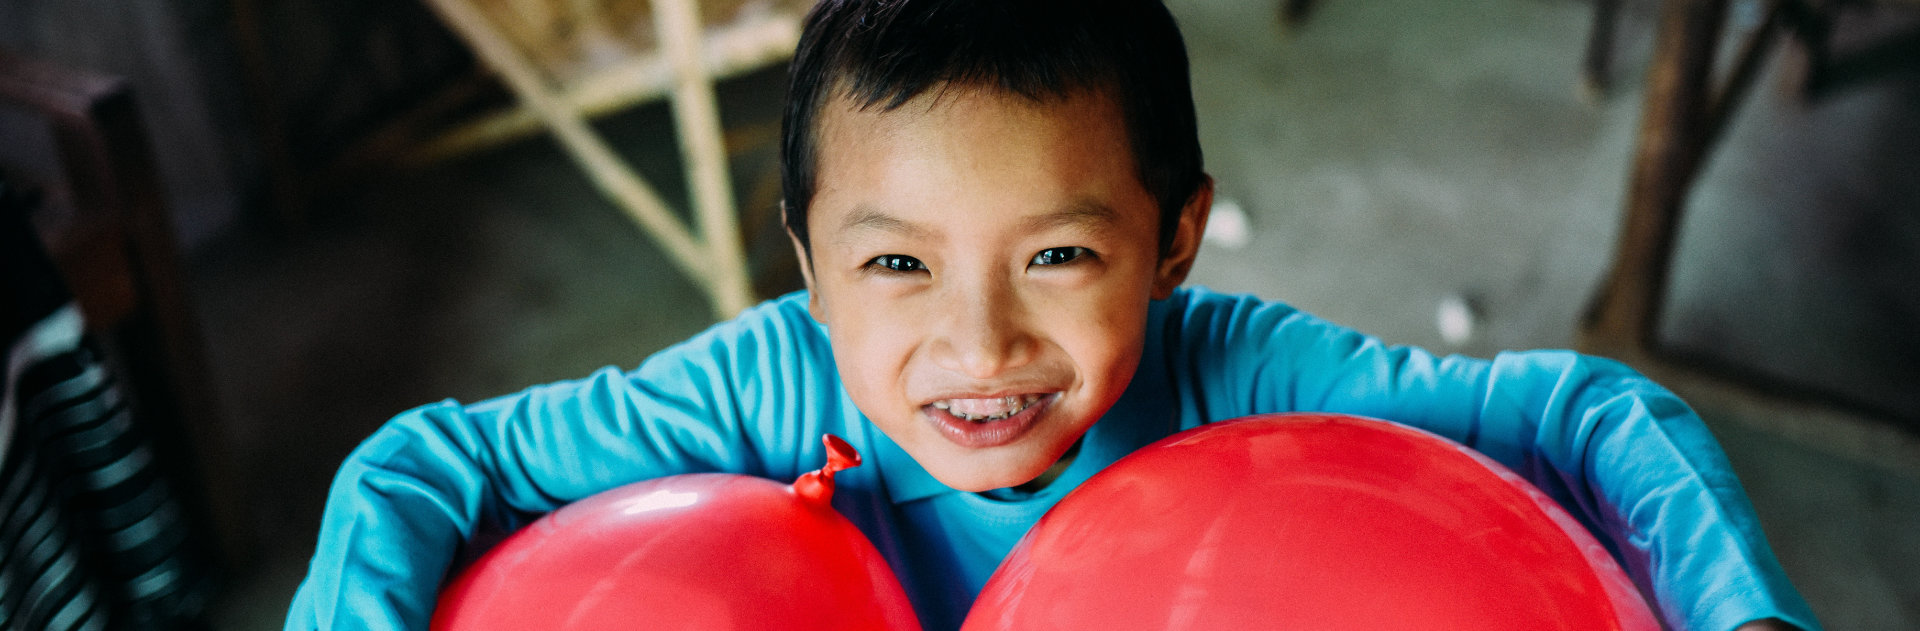 A boy holding two red balloons